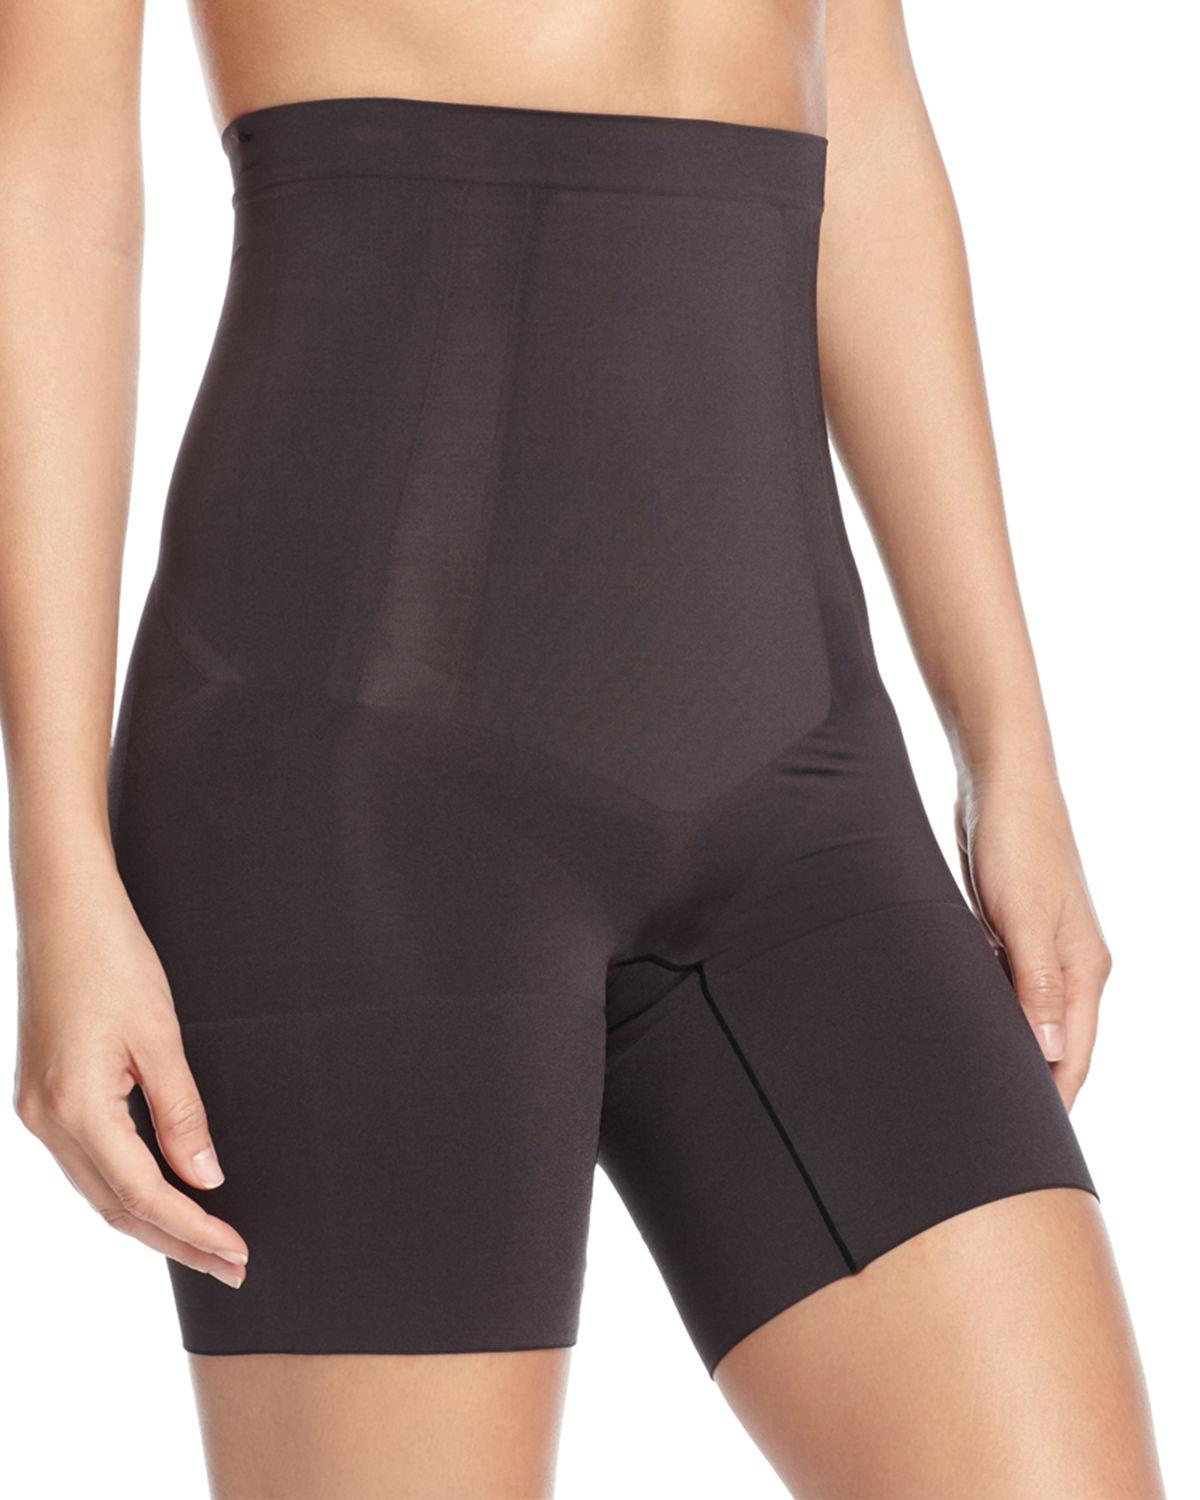 Spanx Synthetic Oncore High Waisted Control Shaper In